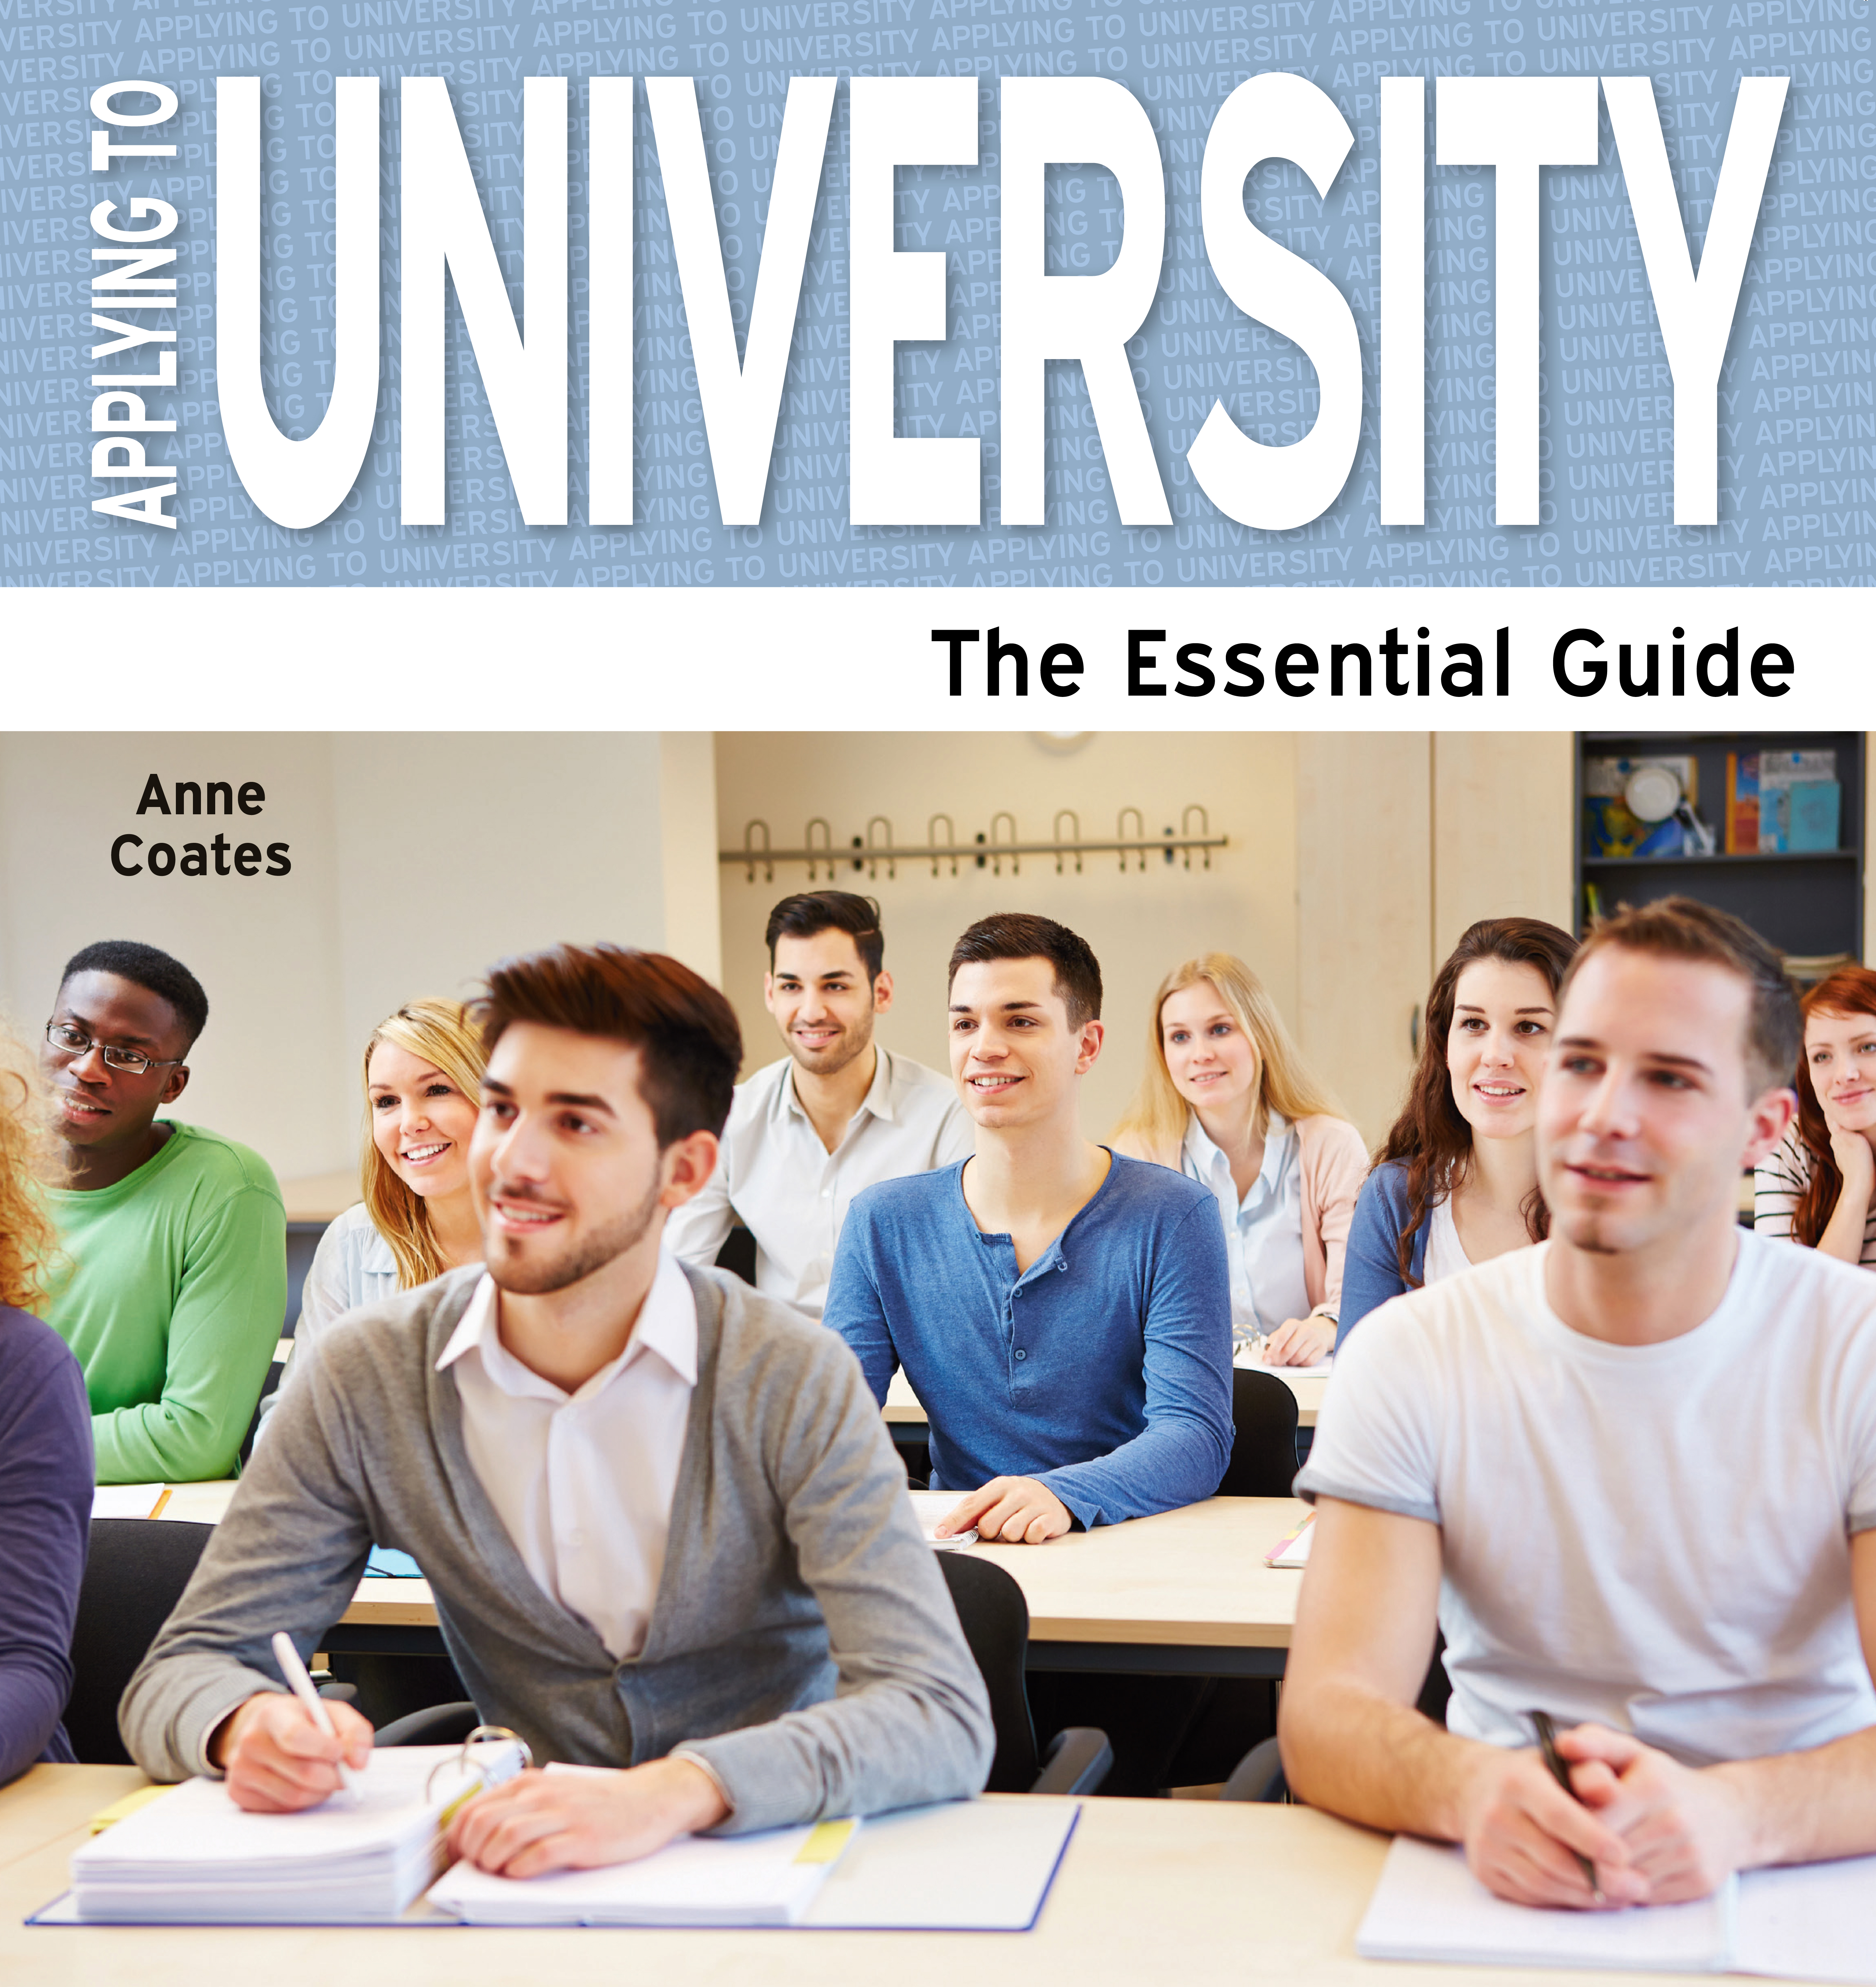 Applying to University The Essential Guide by Anne Coates